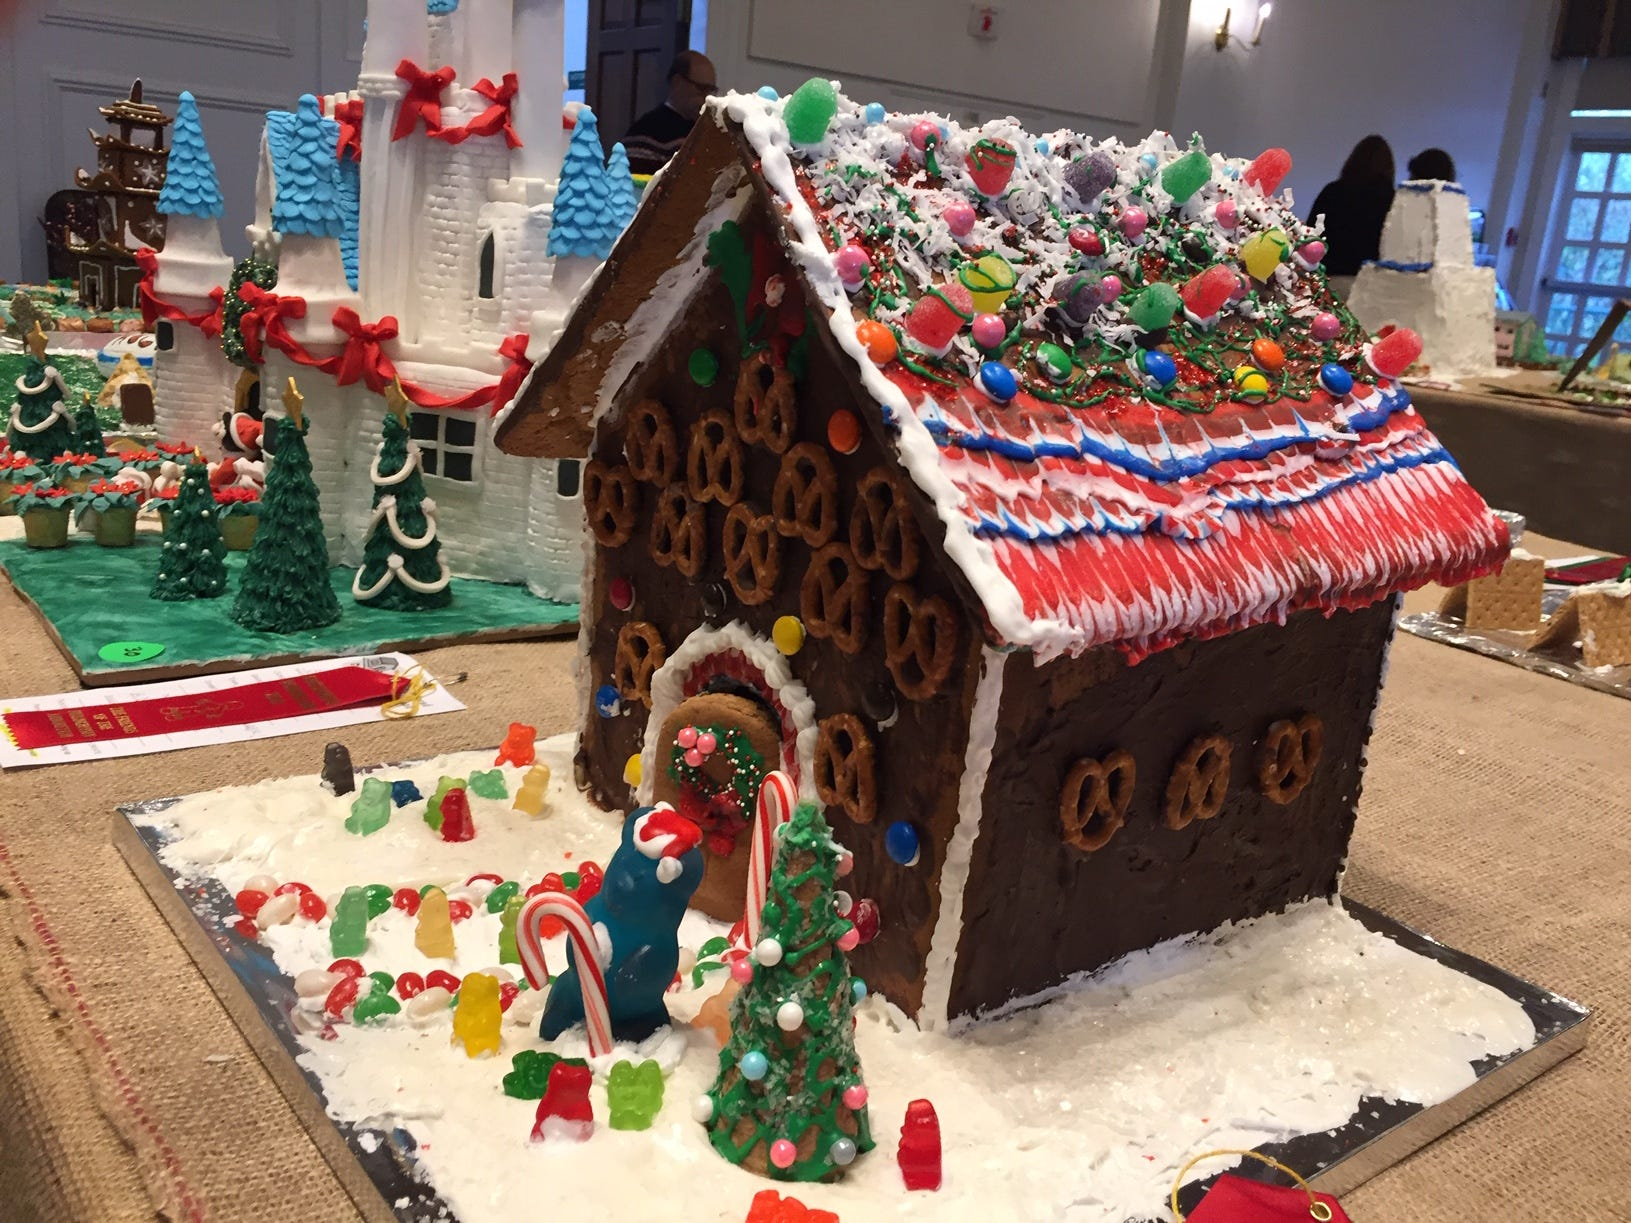 """Ginger Beer House"" by the Zipf Family of Nutley at the 2018 Gingerbread Wonderland at the Frelinghuysen Arboretum. Family category."